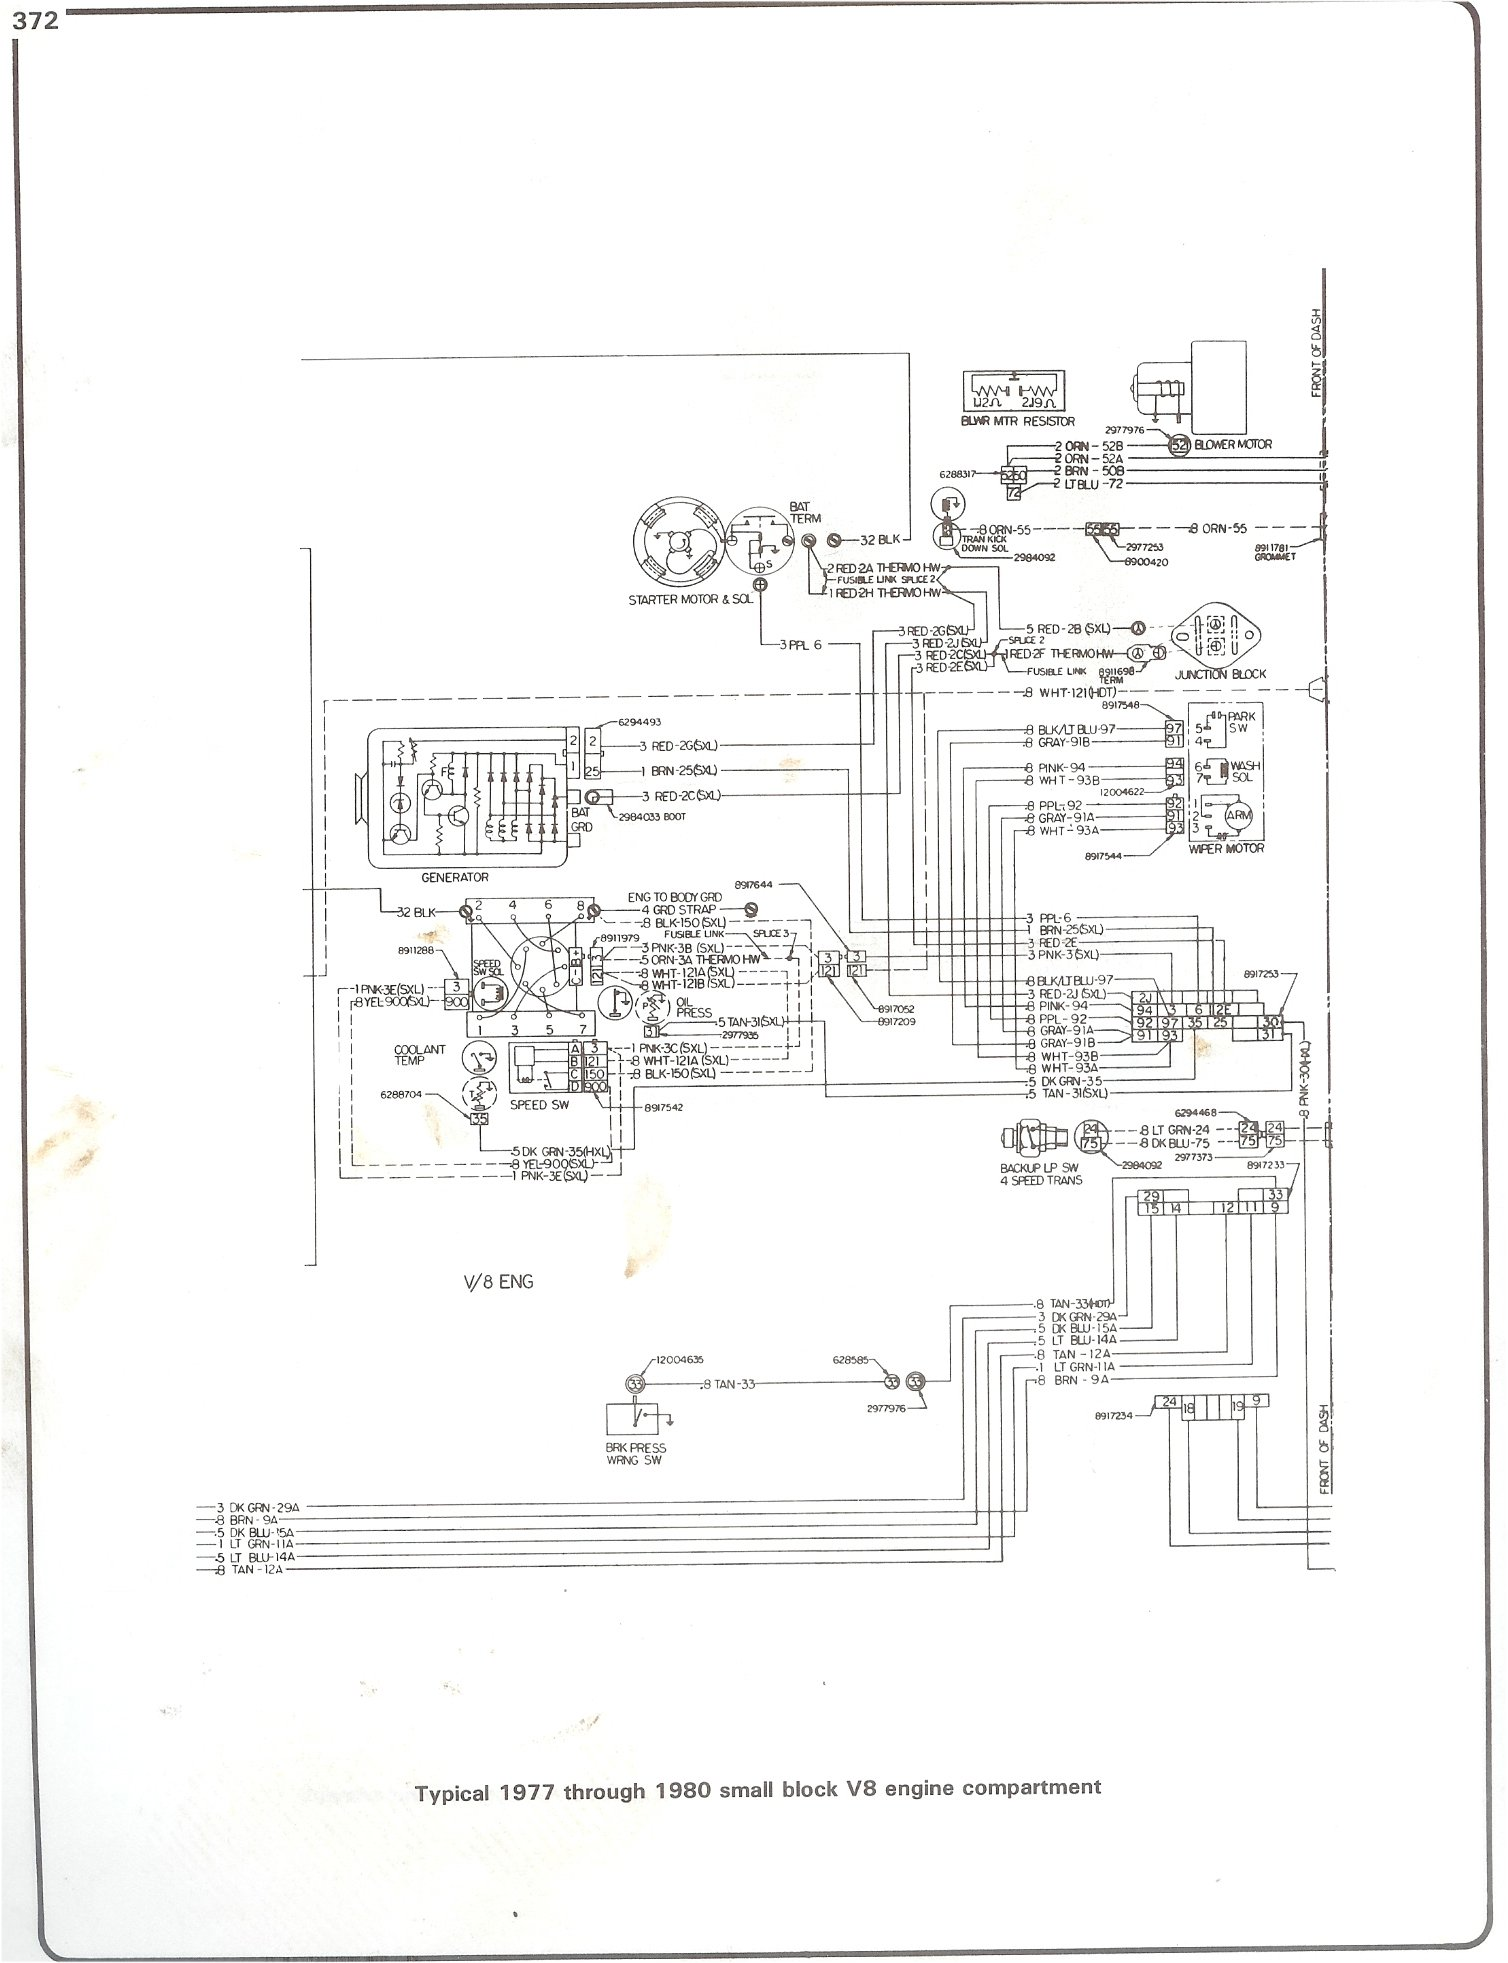 77 gmc wiring diagram testing an a/c relay - the 1947 - present chevrolet & gmc ...